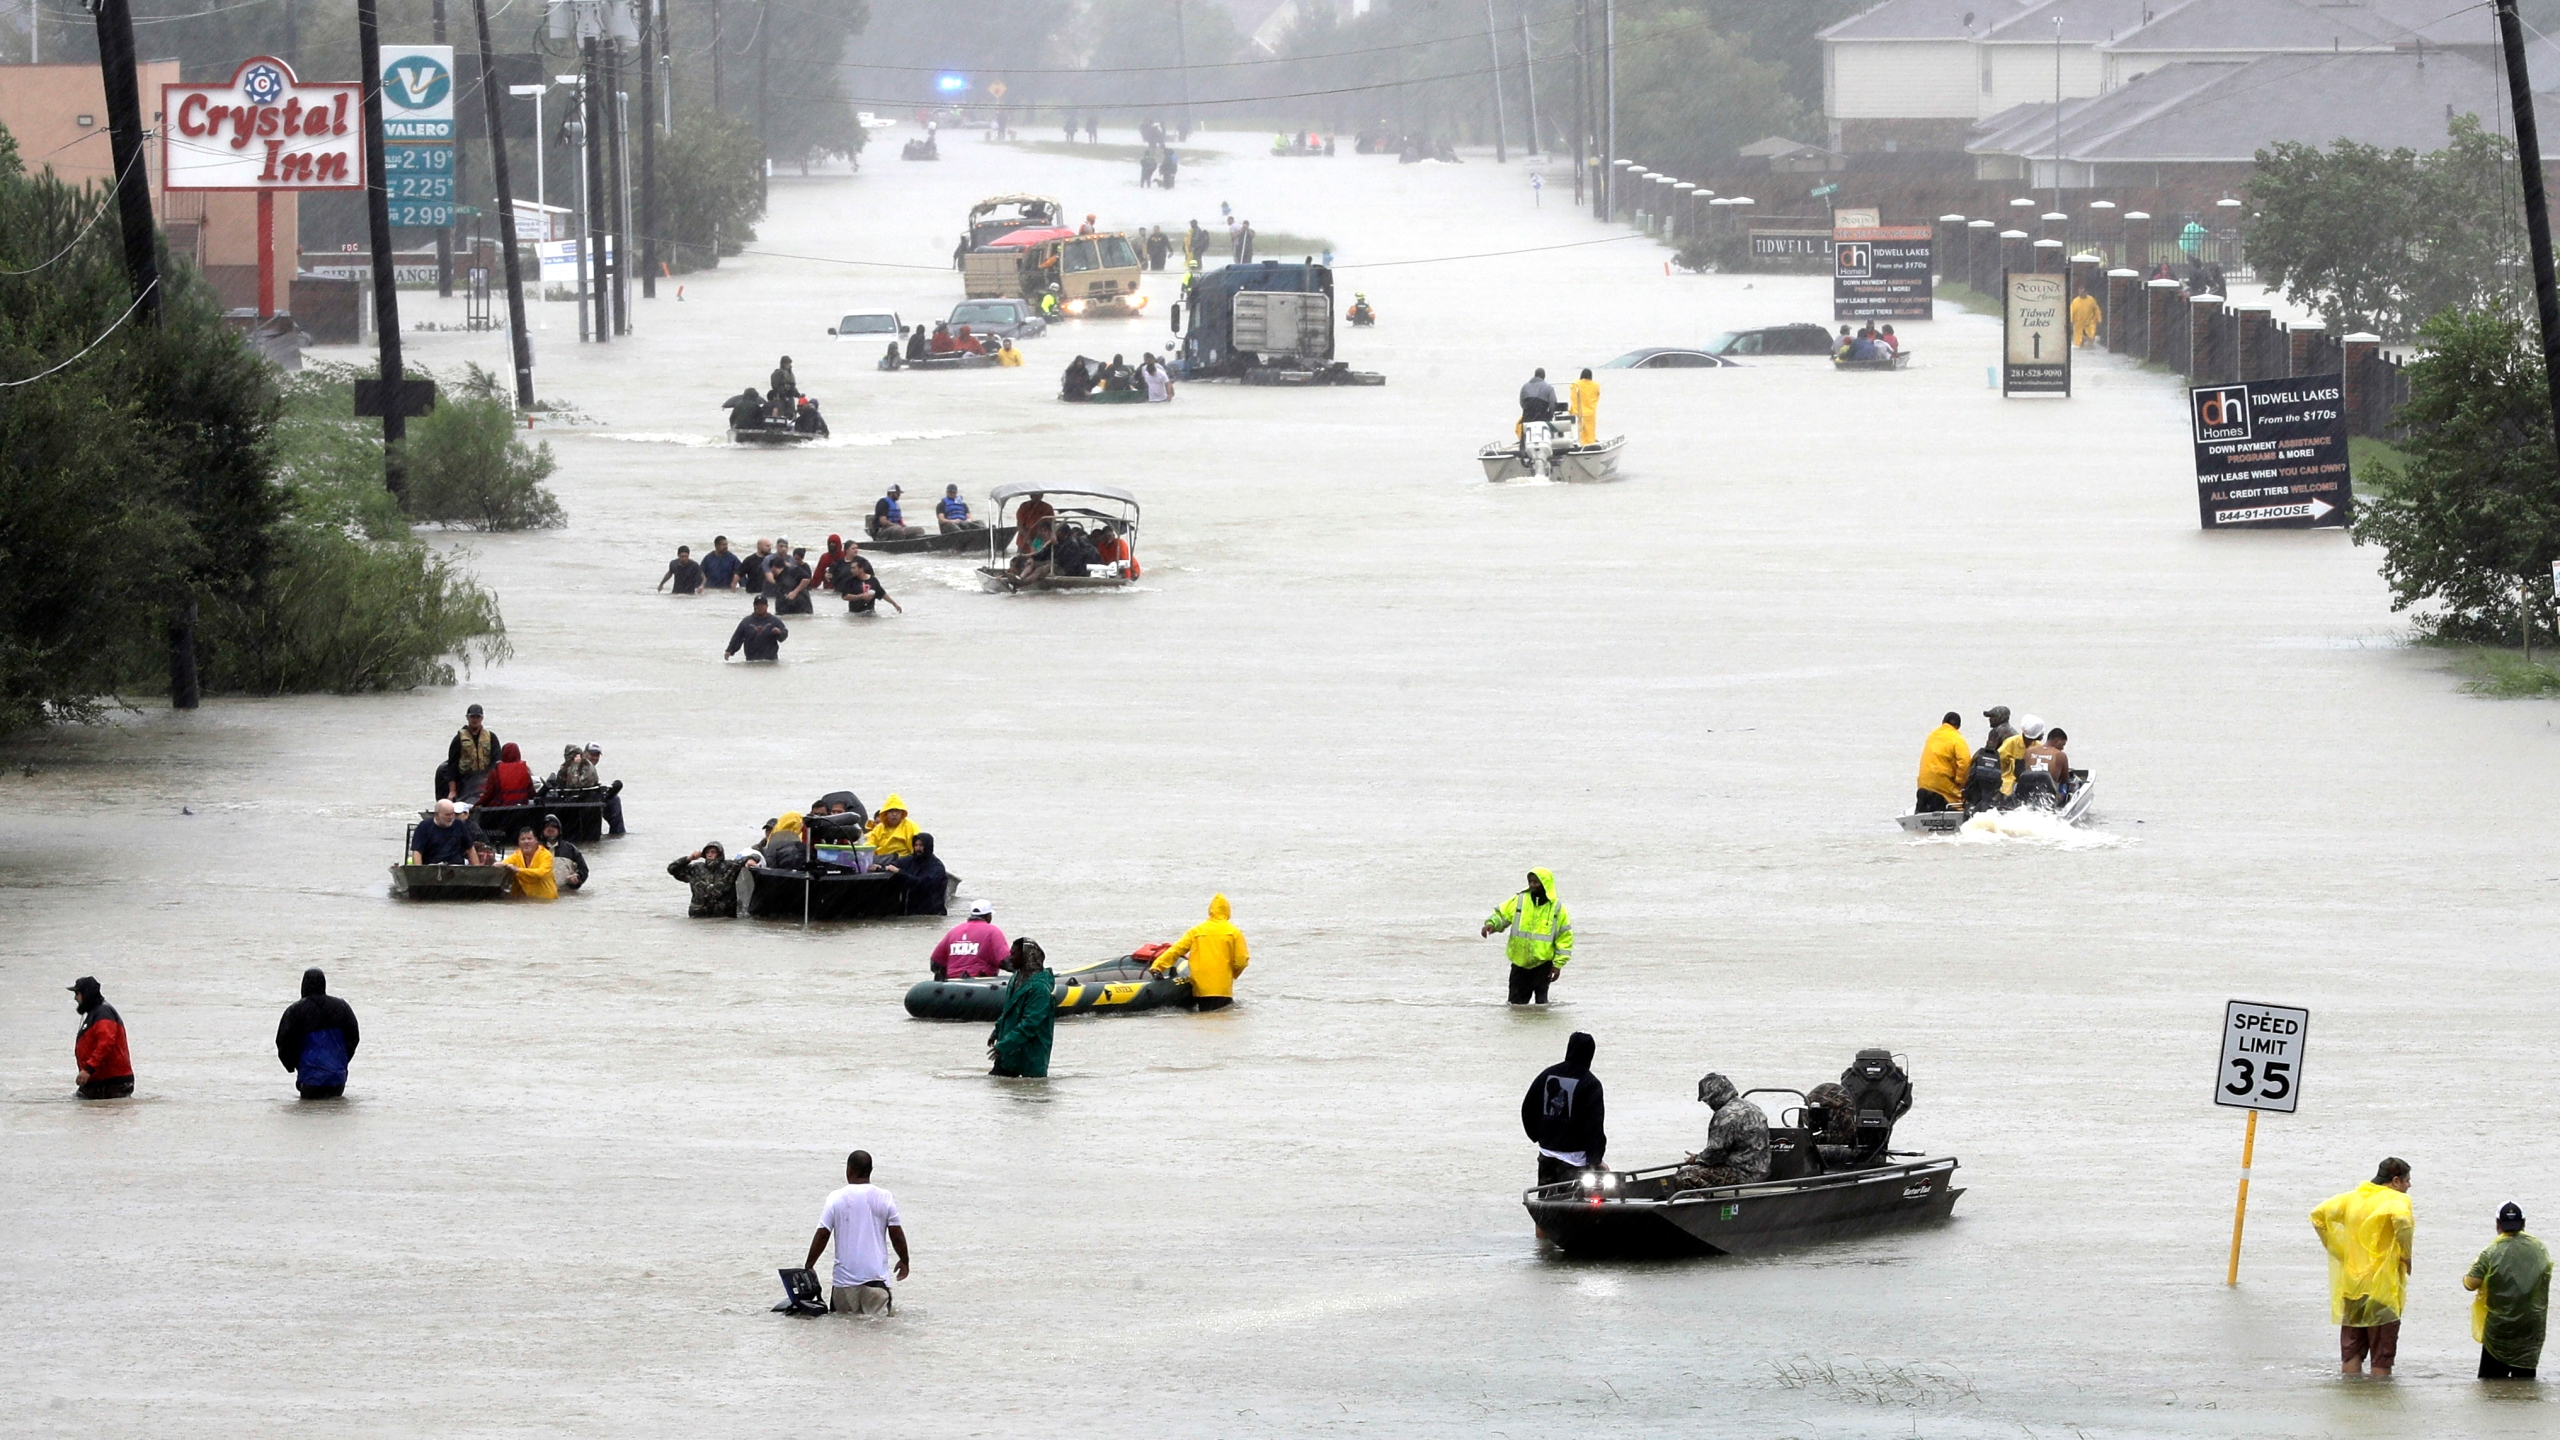 Harvey_Year_Later_Numbers_79113-159532.jpg23496770